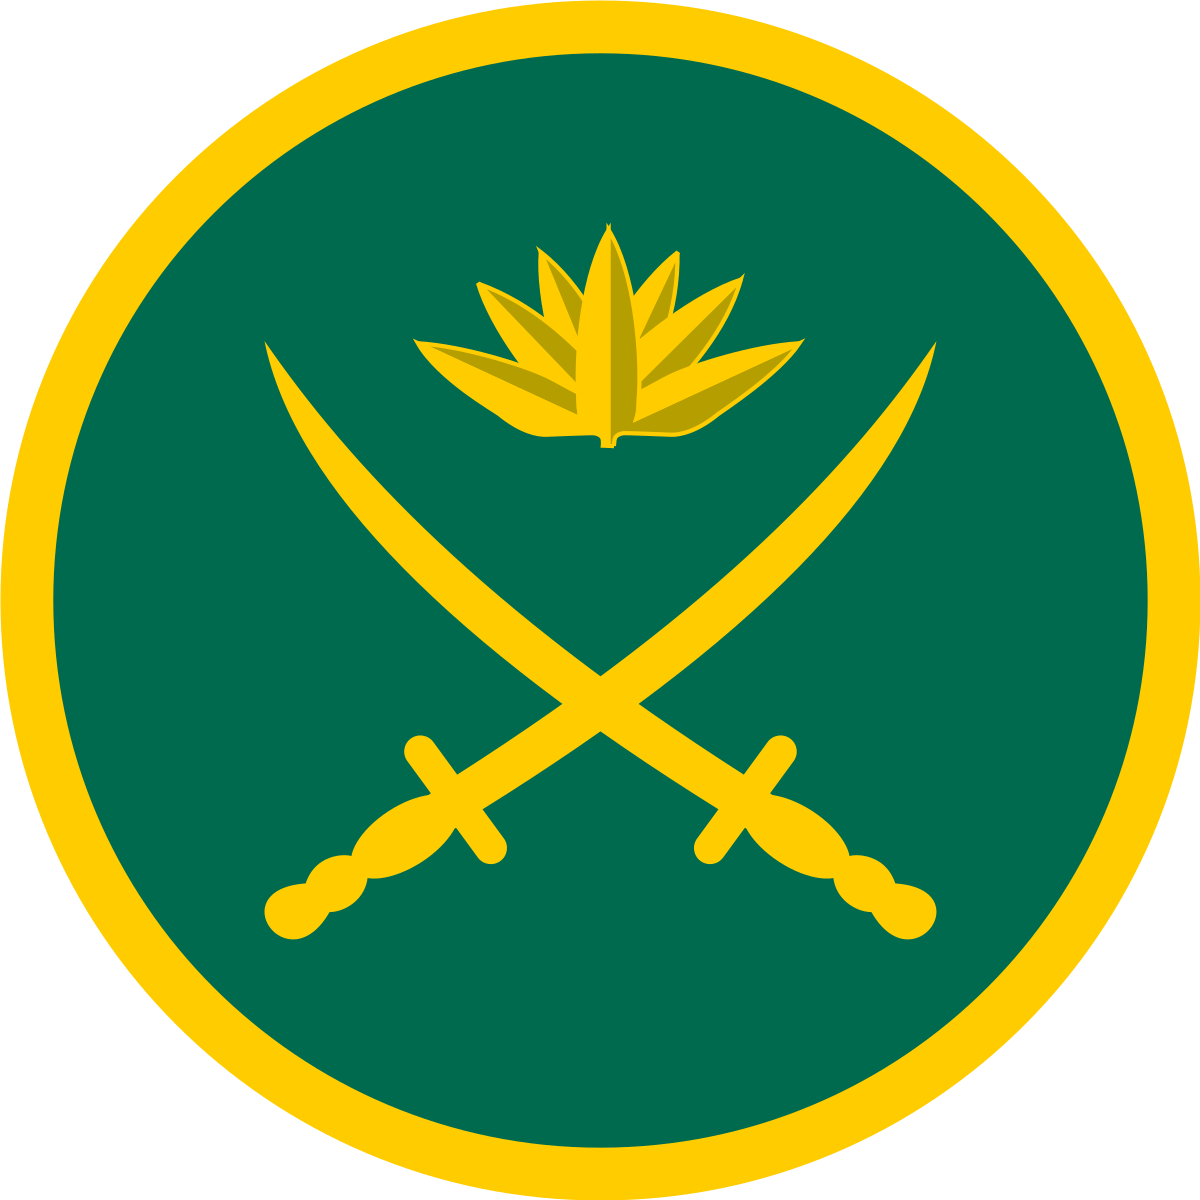 Equipment of the Bangladesh Army.